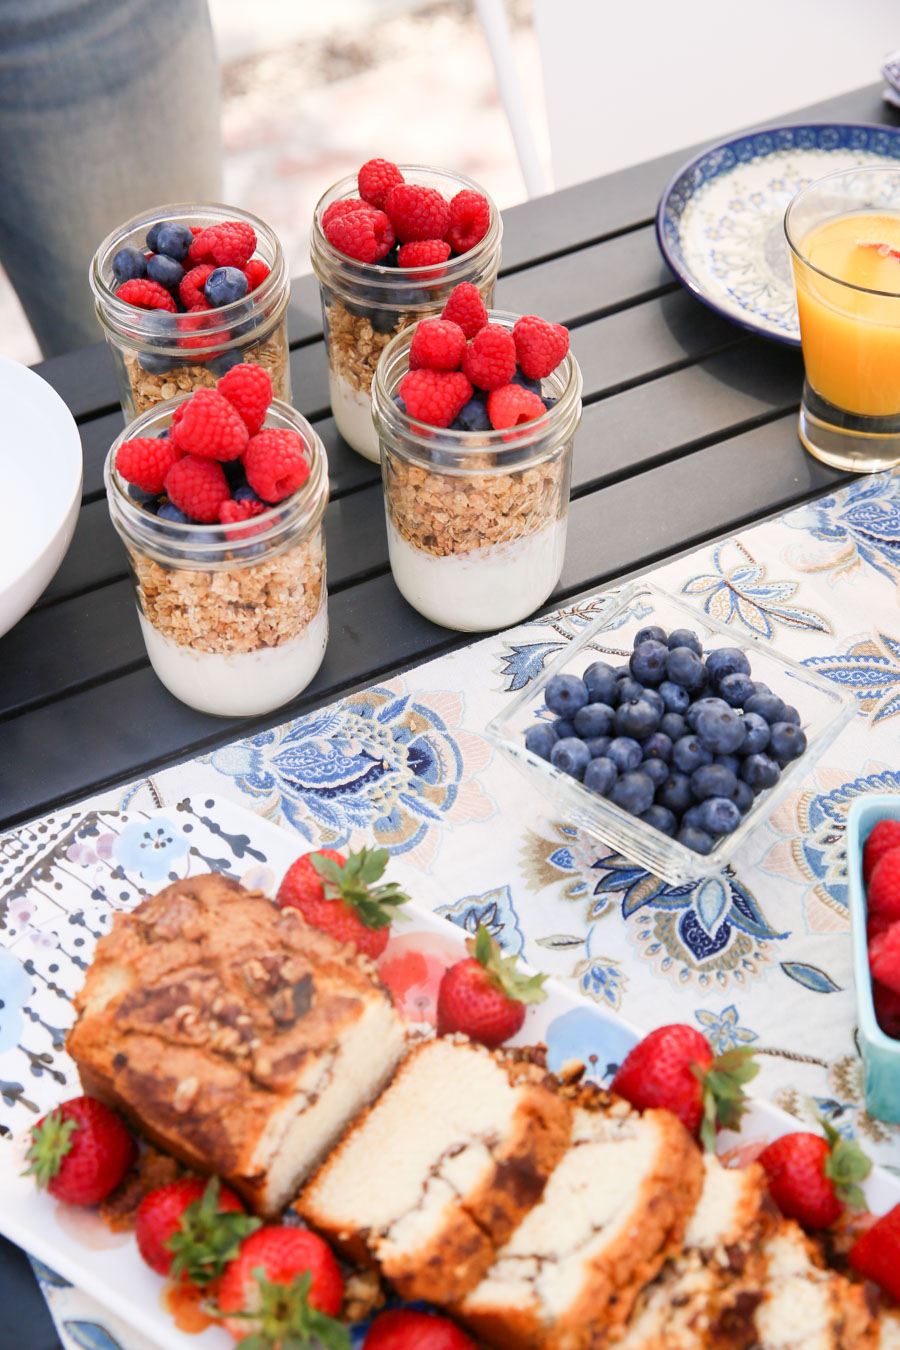 Easy Breakfast/Brunch for 4 w. Yogurt Parfaits, pastries, and brunch sangria. Comes together in 20 minutes. Shopping List included!